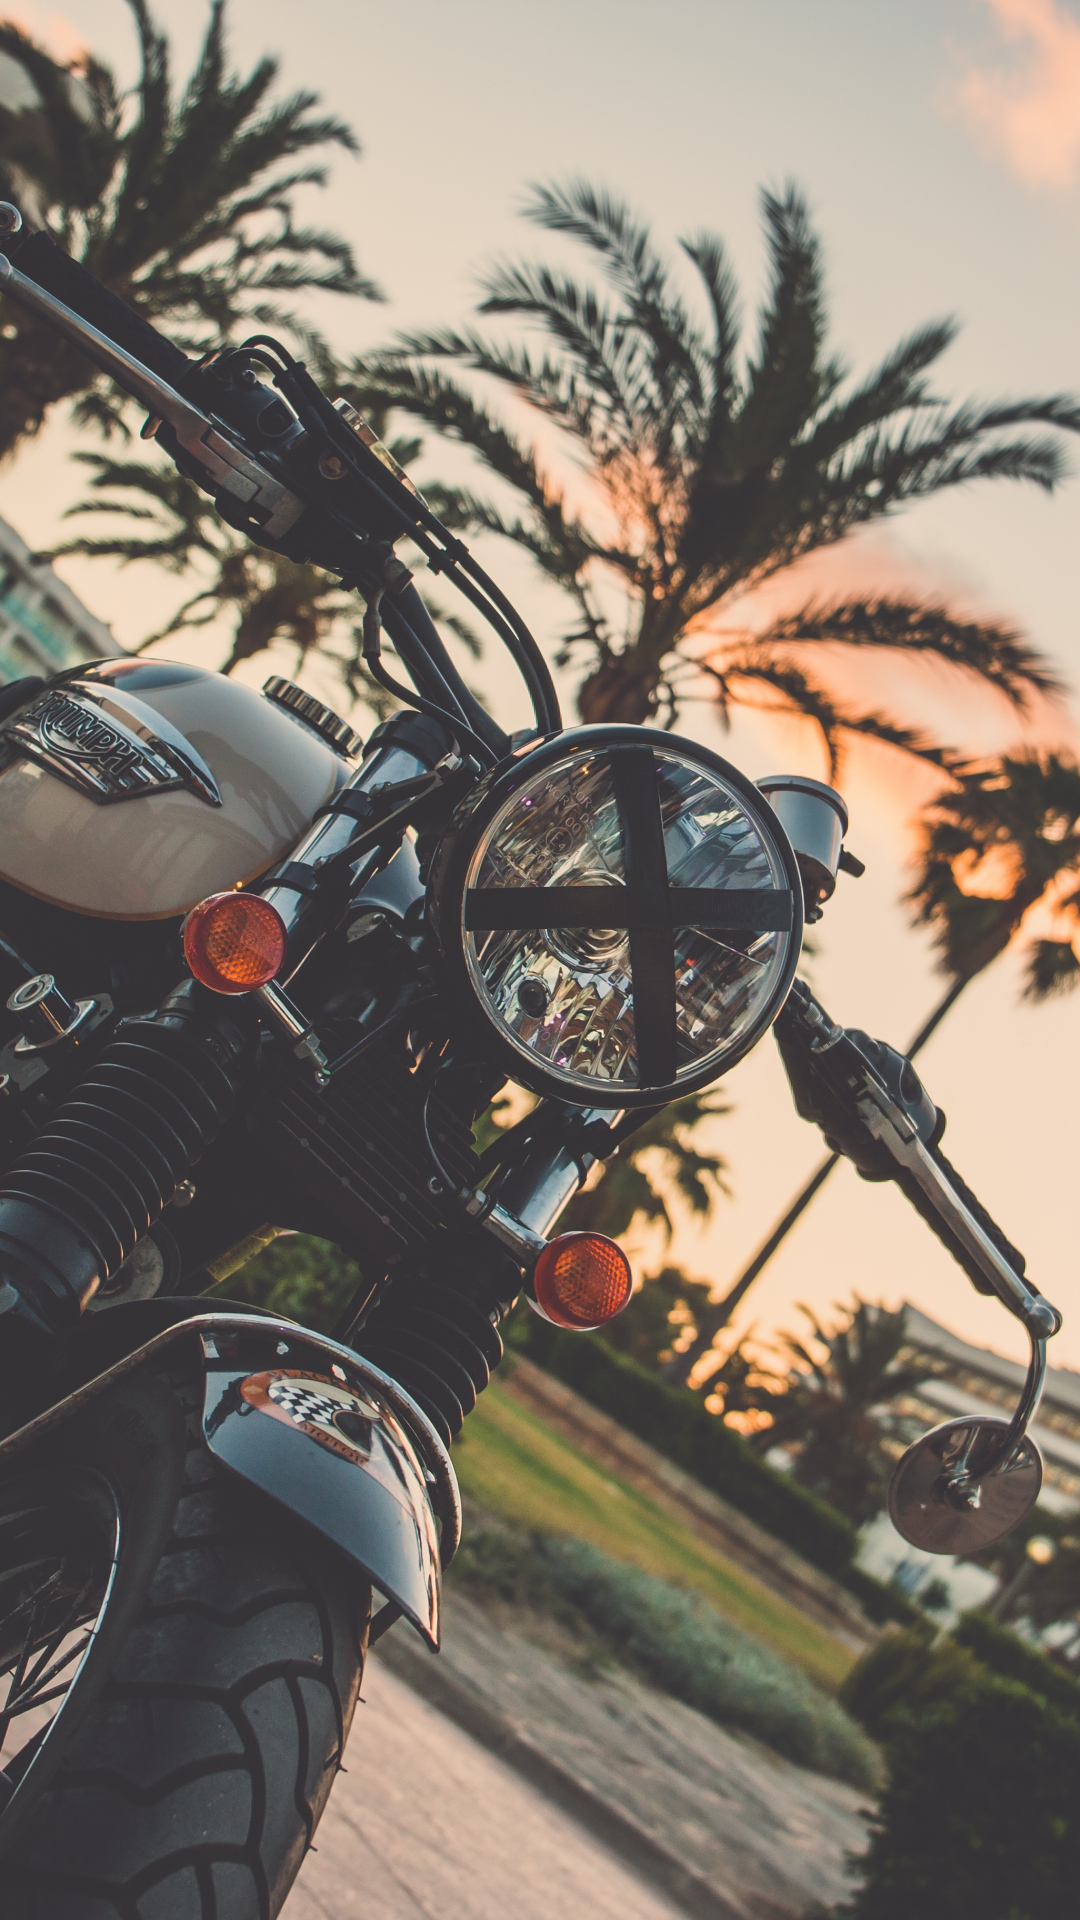 iphone wallpaper motorcycle bike palm tree 3Wallpapers : notre sélection de fonds d'écran du 24/11/2017